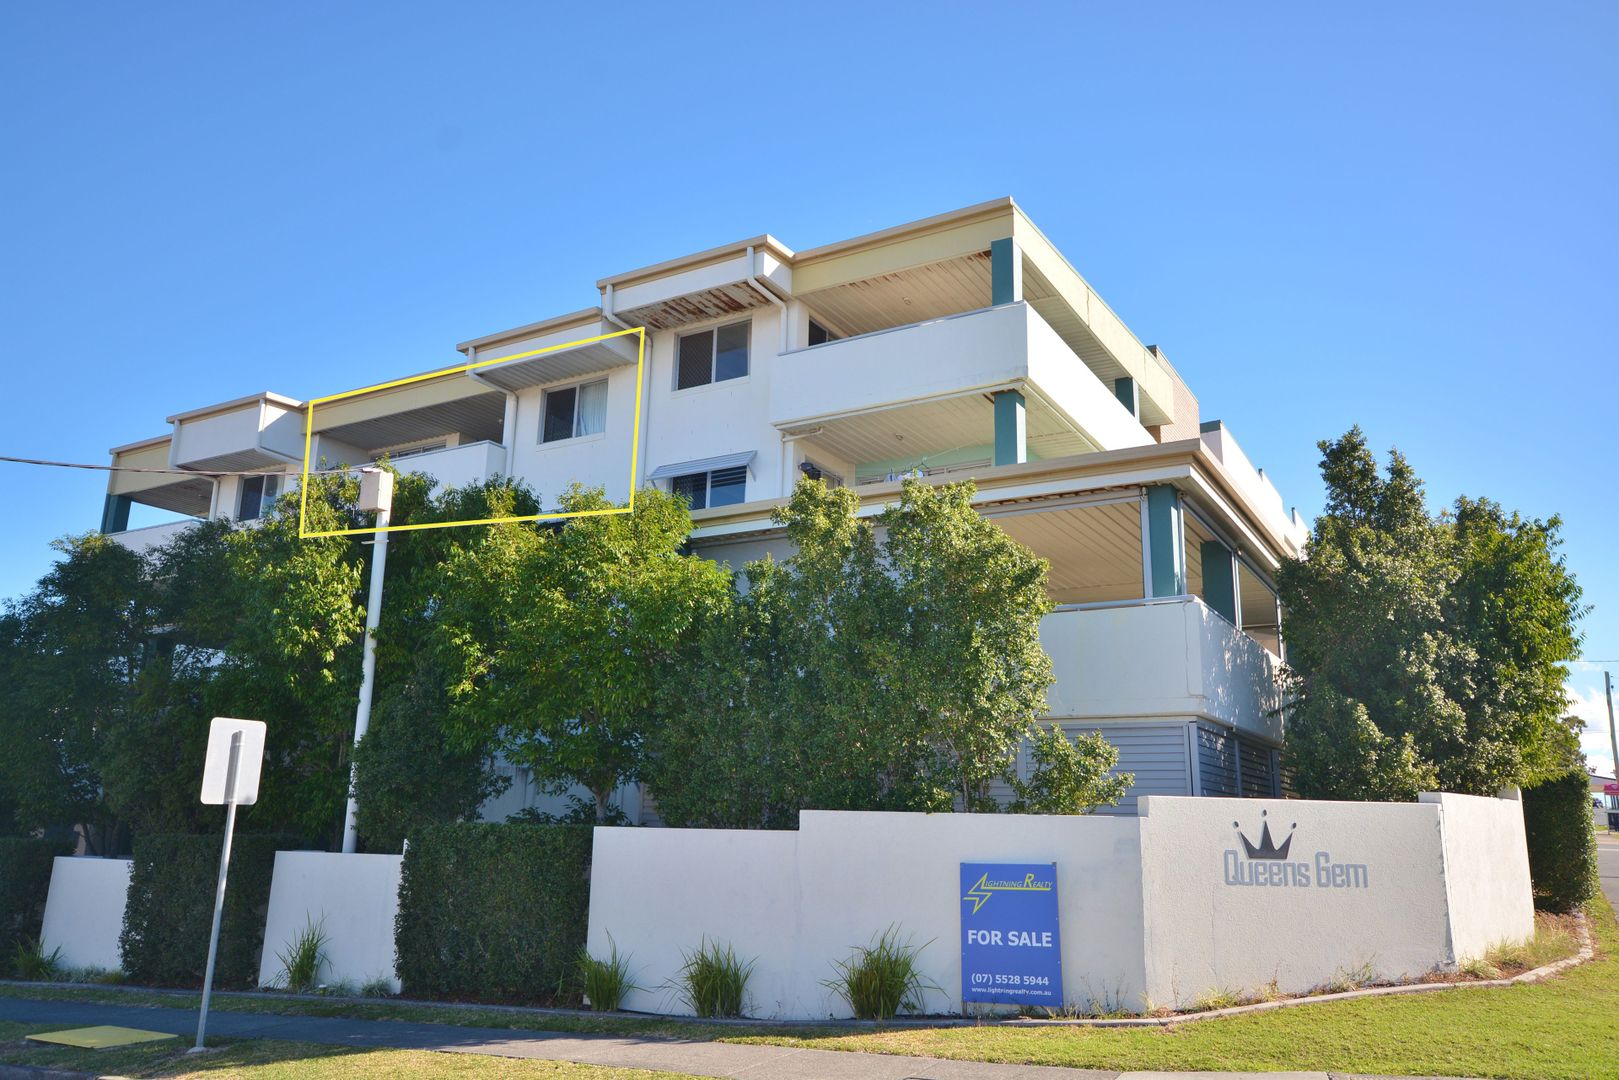 25/52 Queen Street, Southport QLD 4215, Image 0